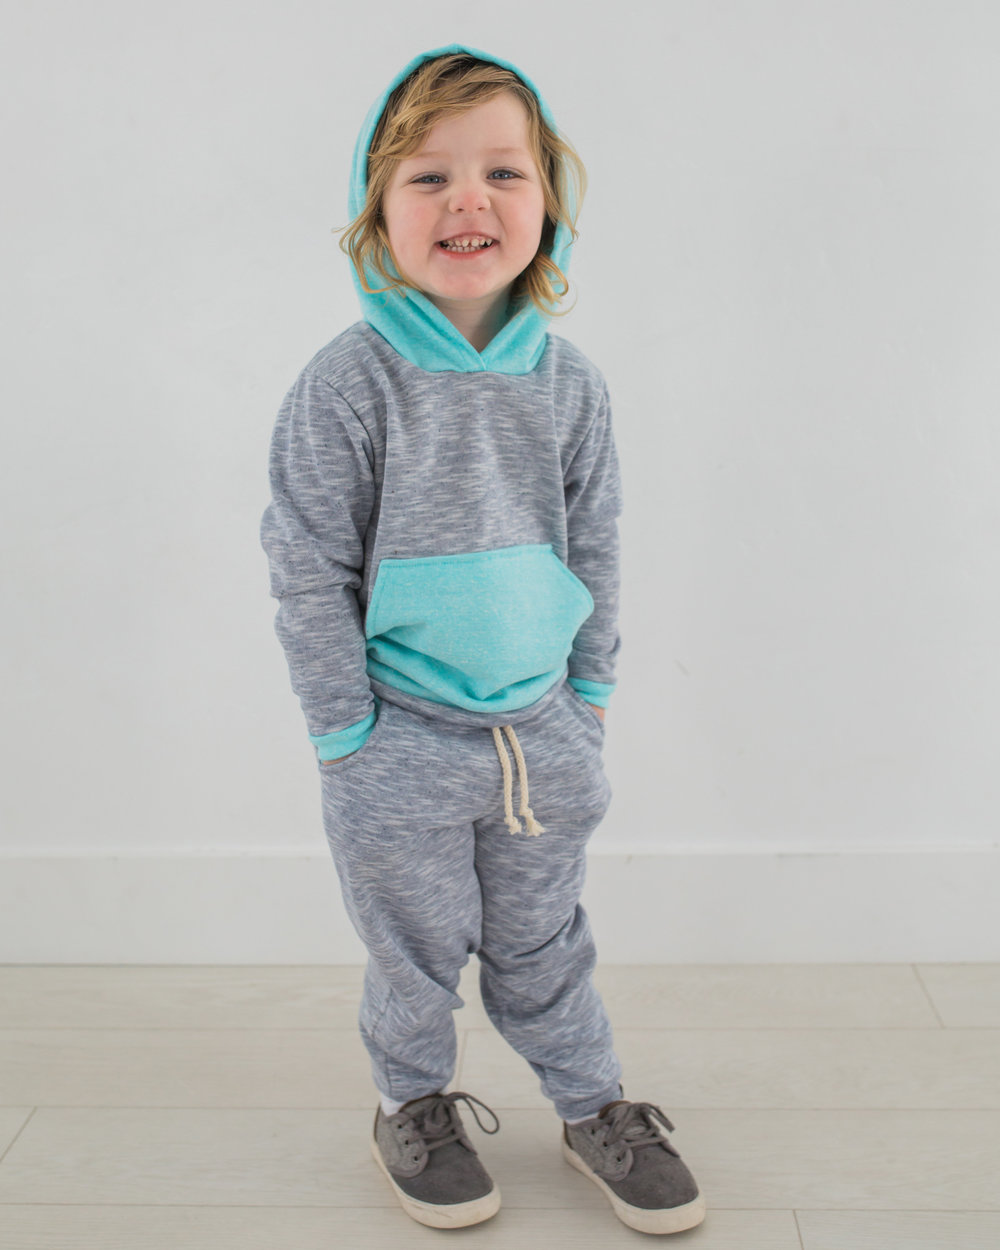 Paradise Kids Clothing-0039.jpg